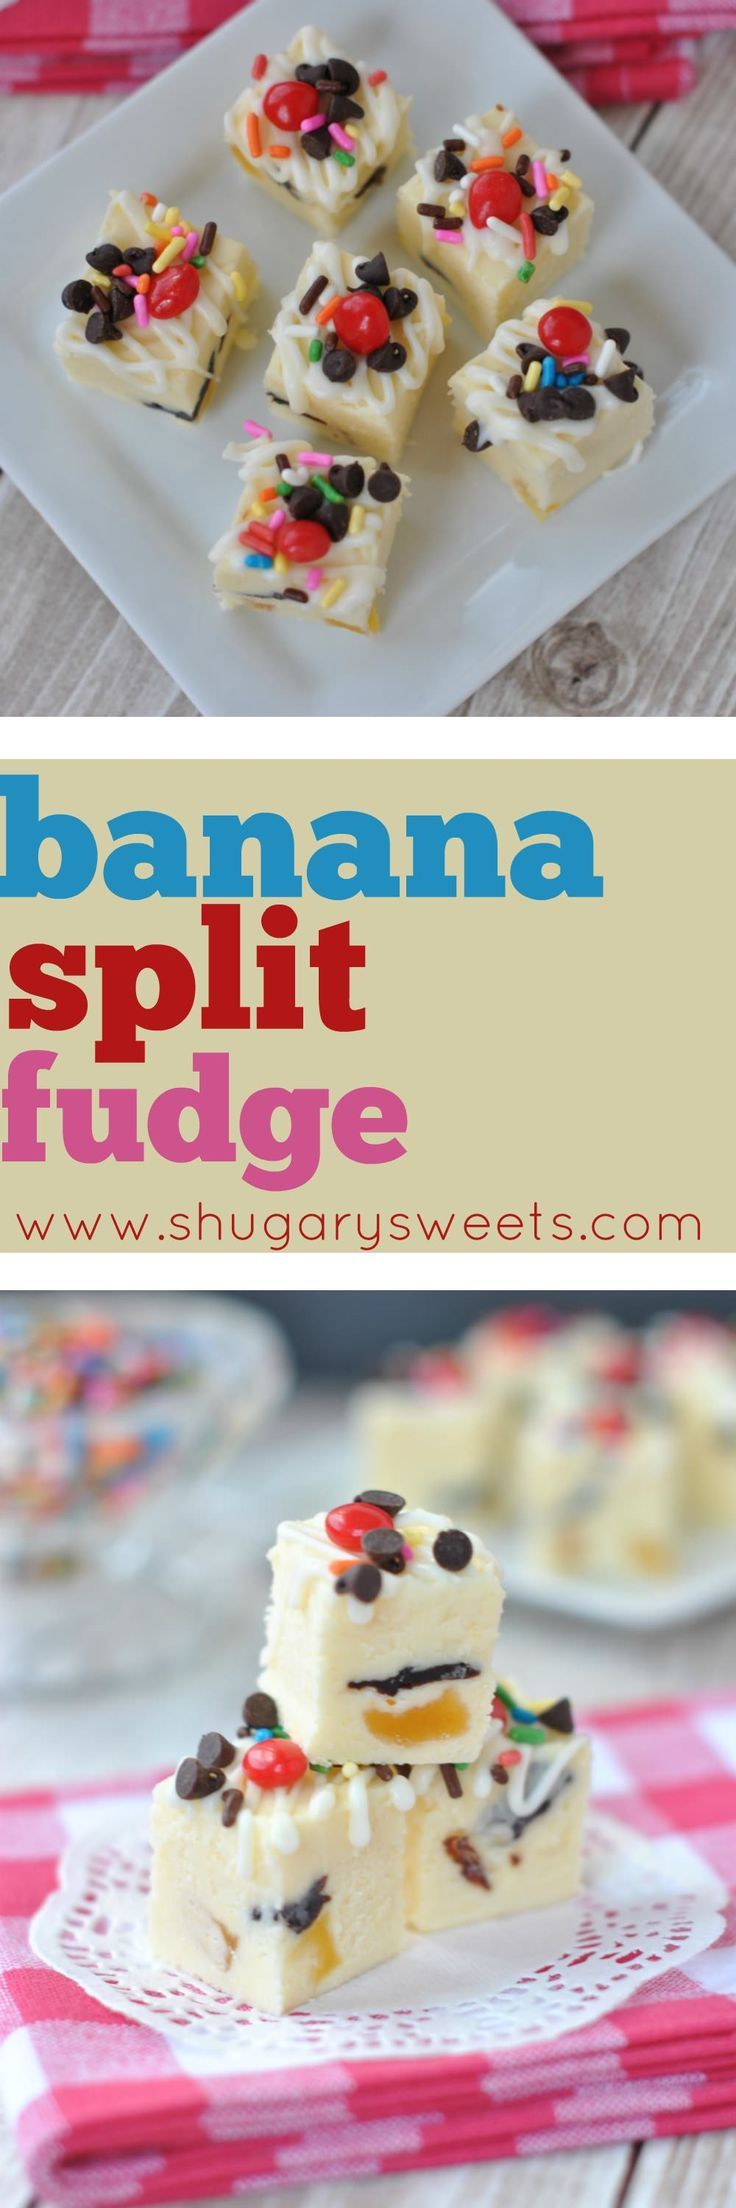 Slow Cooker: Banana Split Fudge - Shugary Sweets